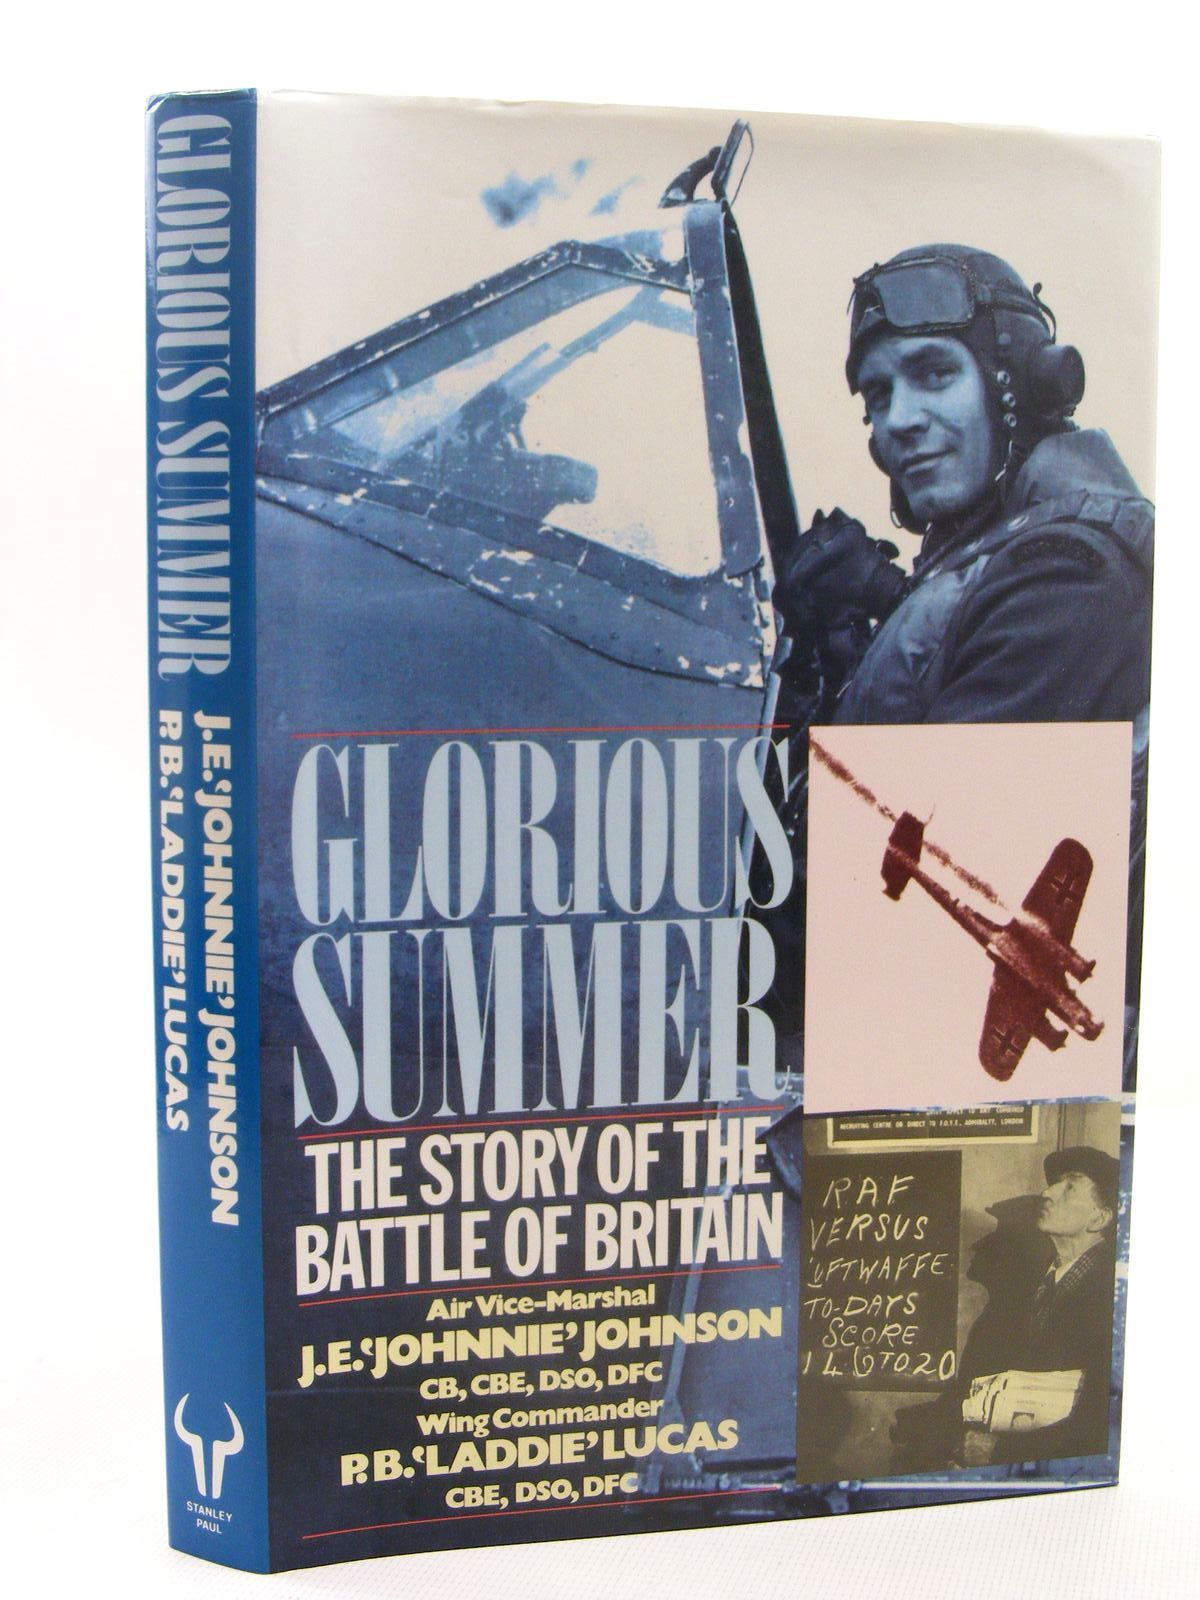 Photo of GLORIOUS SUMMER THE STORY OF THE BATTLE OF BRITAIN written by Johnson, J.E. Lucas, P.B. published by Stanley Paul (STOCK CODE: 1610278)  for sale by Stella & Rose's Books